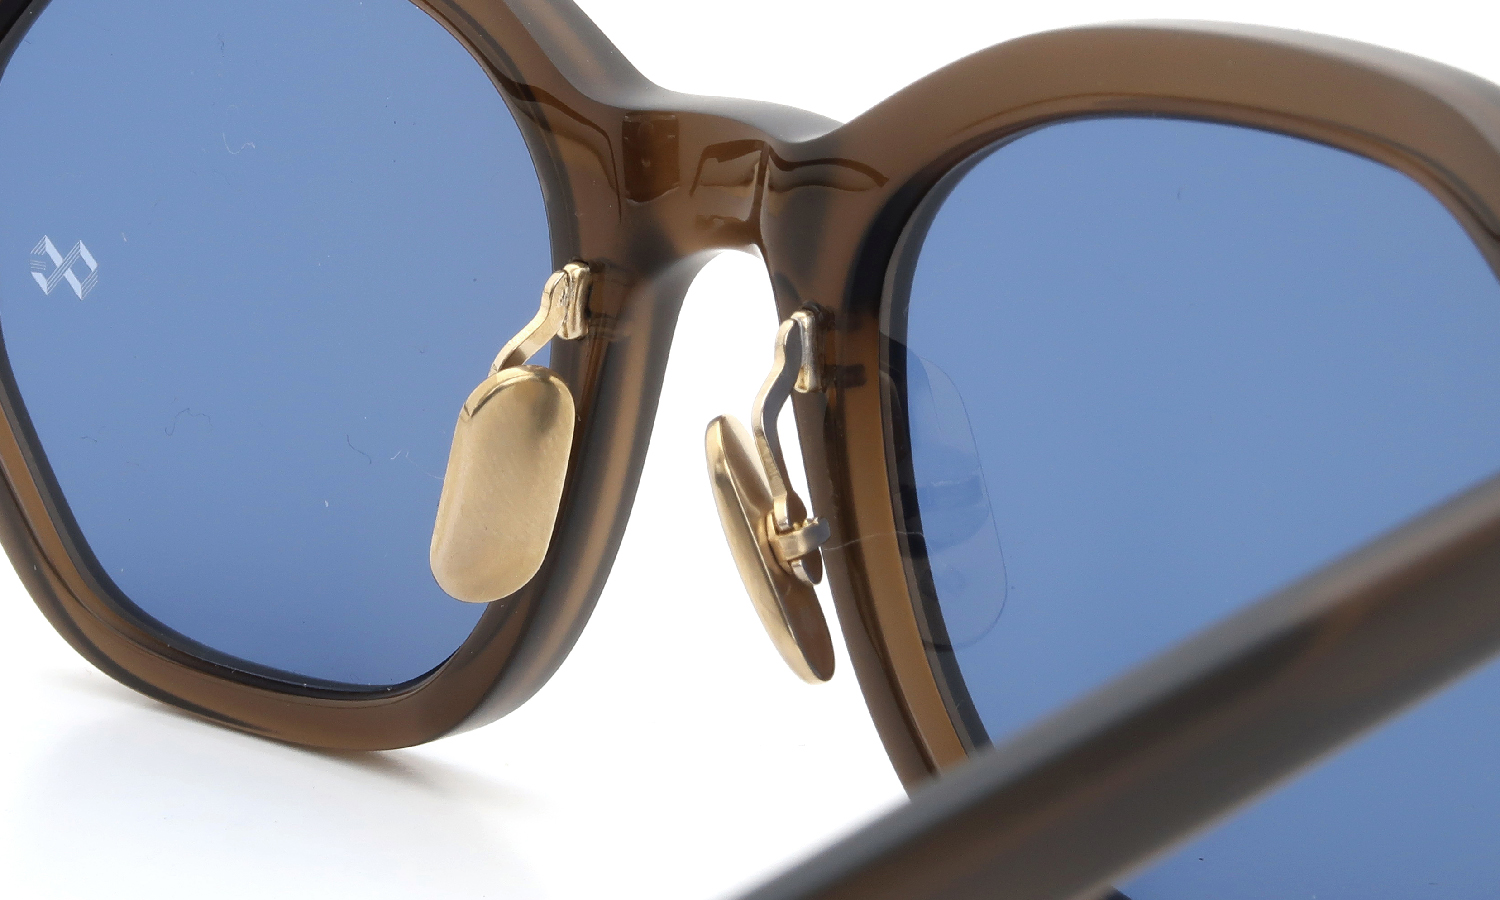 OG × OLIVER GOLDSMITH Re:BETSY 49 SG リ:ベッツィ 8